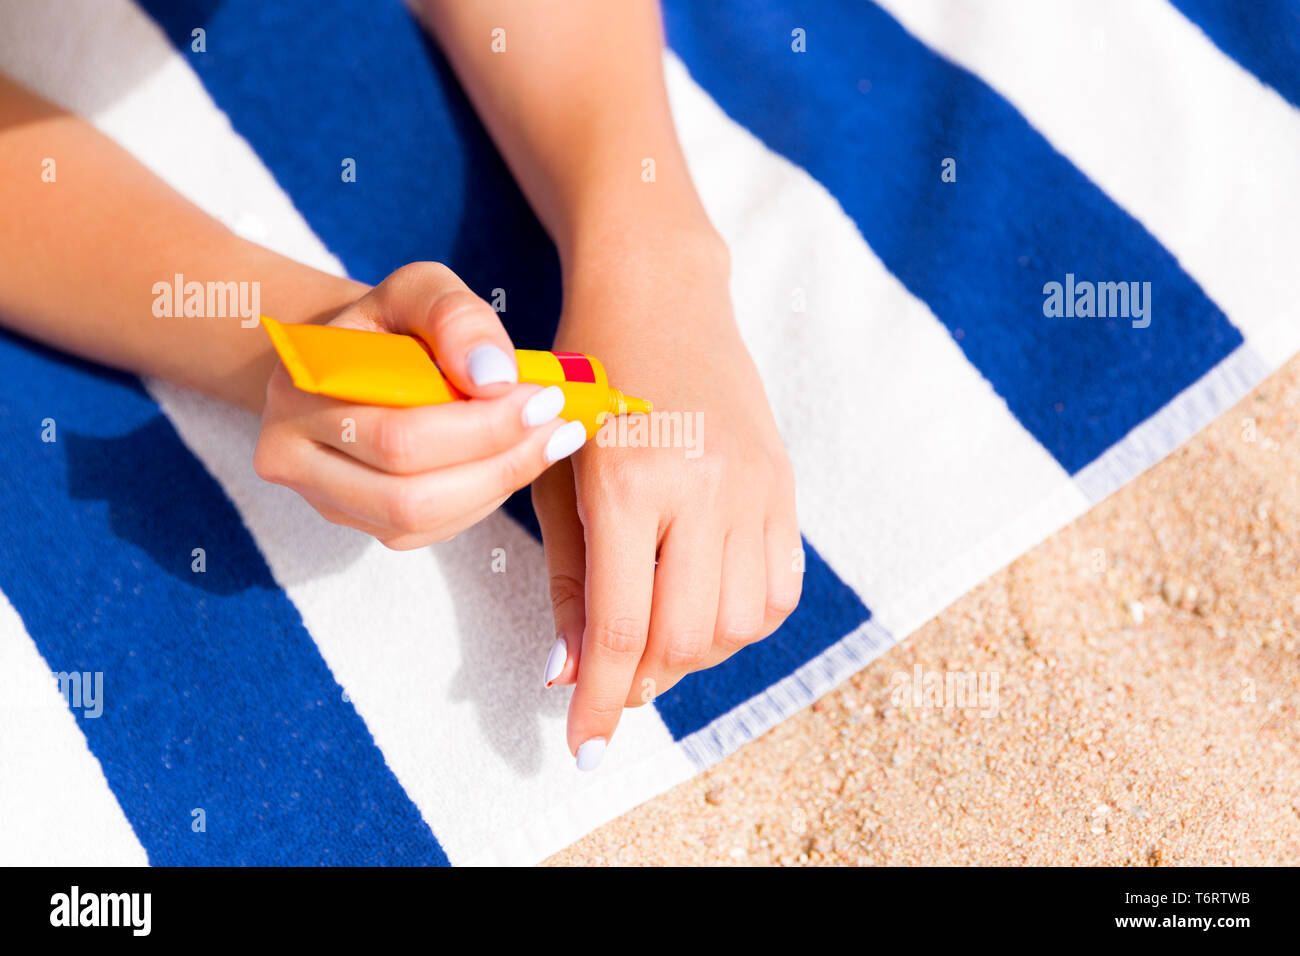 Woman hands putting sunscreen from a suncream bottle. - Stock Image